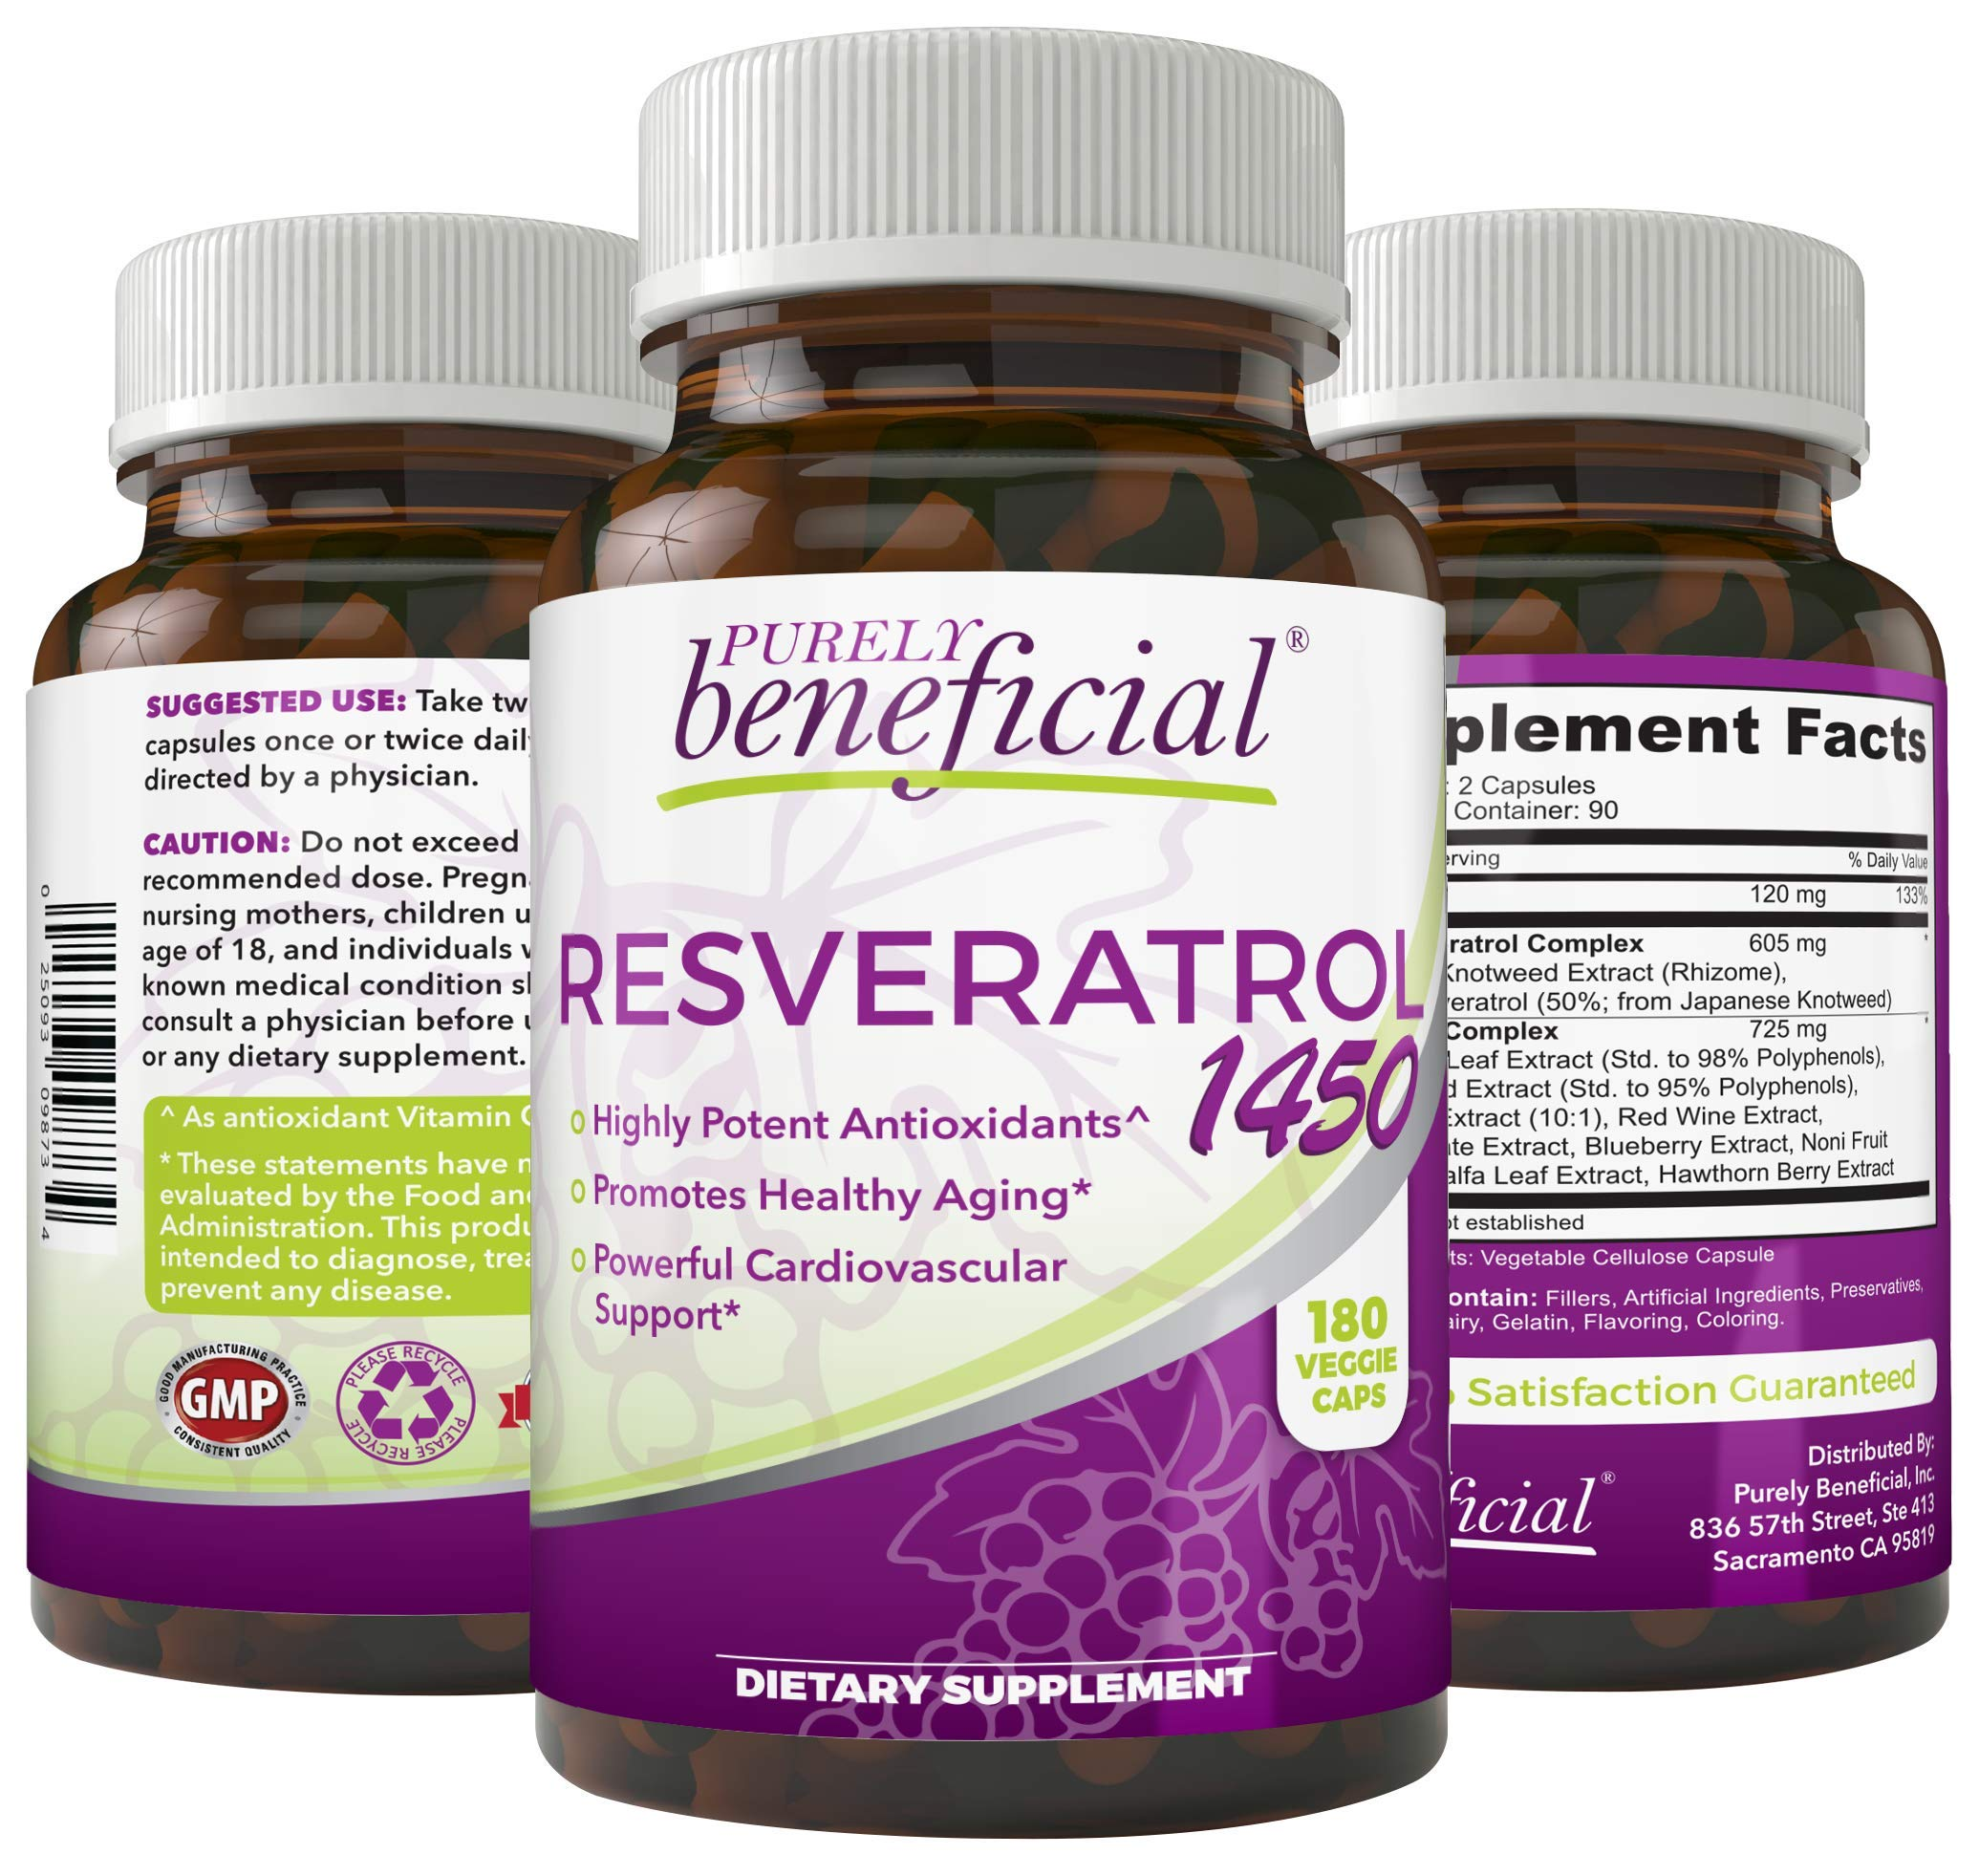 RESVERATROL1450-90day Supply, 1450mg per Serving of Potent Antioxidants & Trans-Resveratrol, Promotes Anti-Aging, Cardiovascular Support, Maximum Benefits by PURELY beneficial